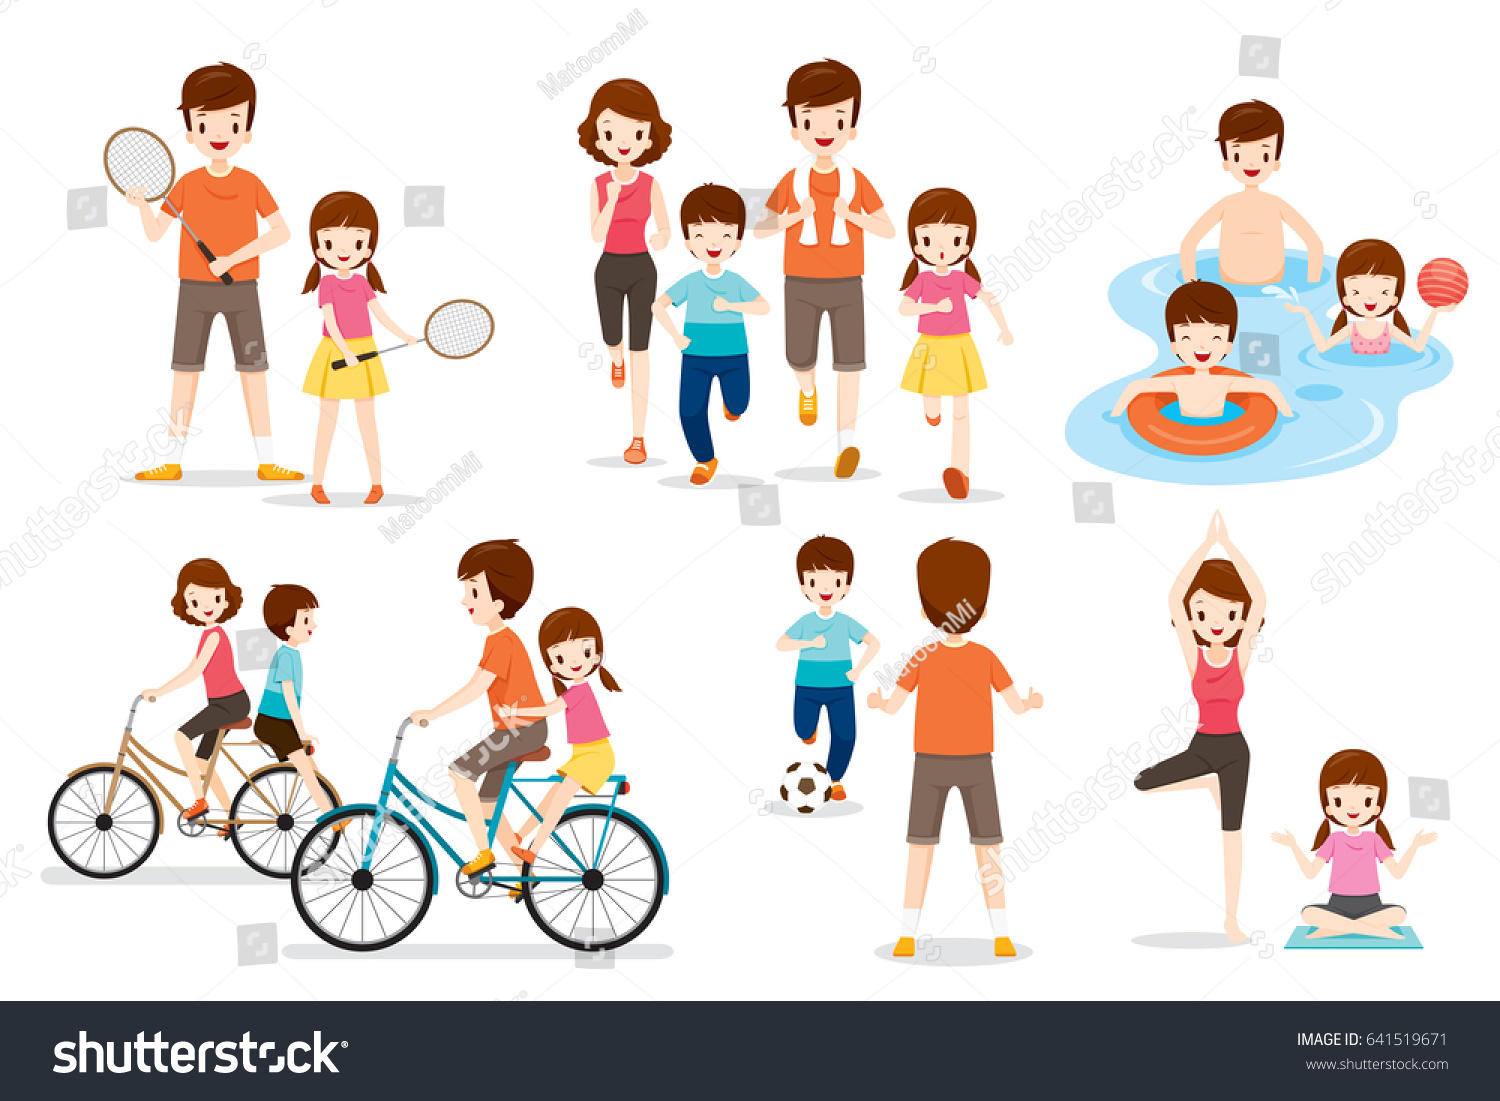 Family activities clipart 7 » Clipart Station.